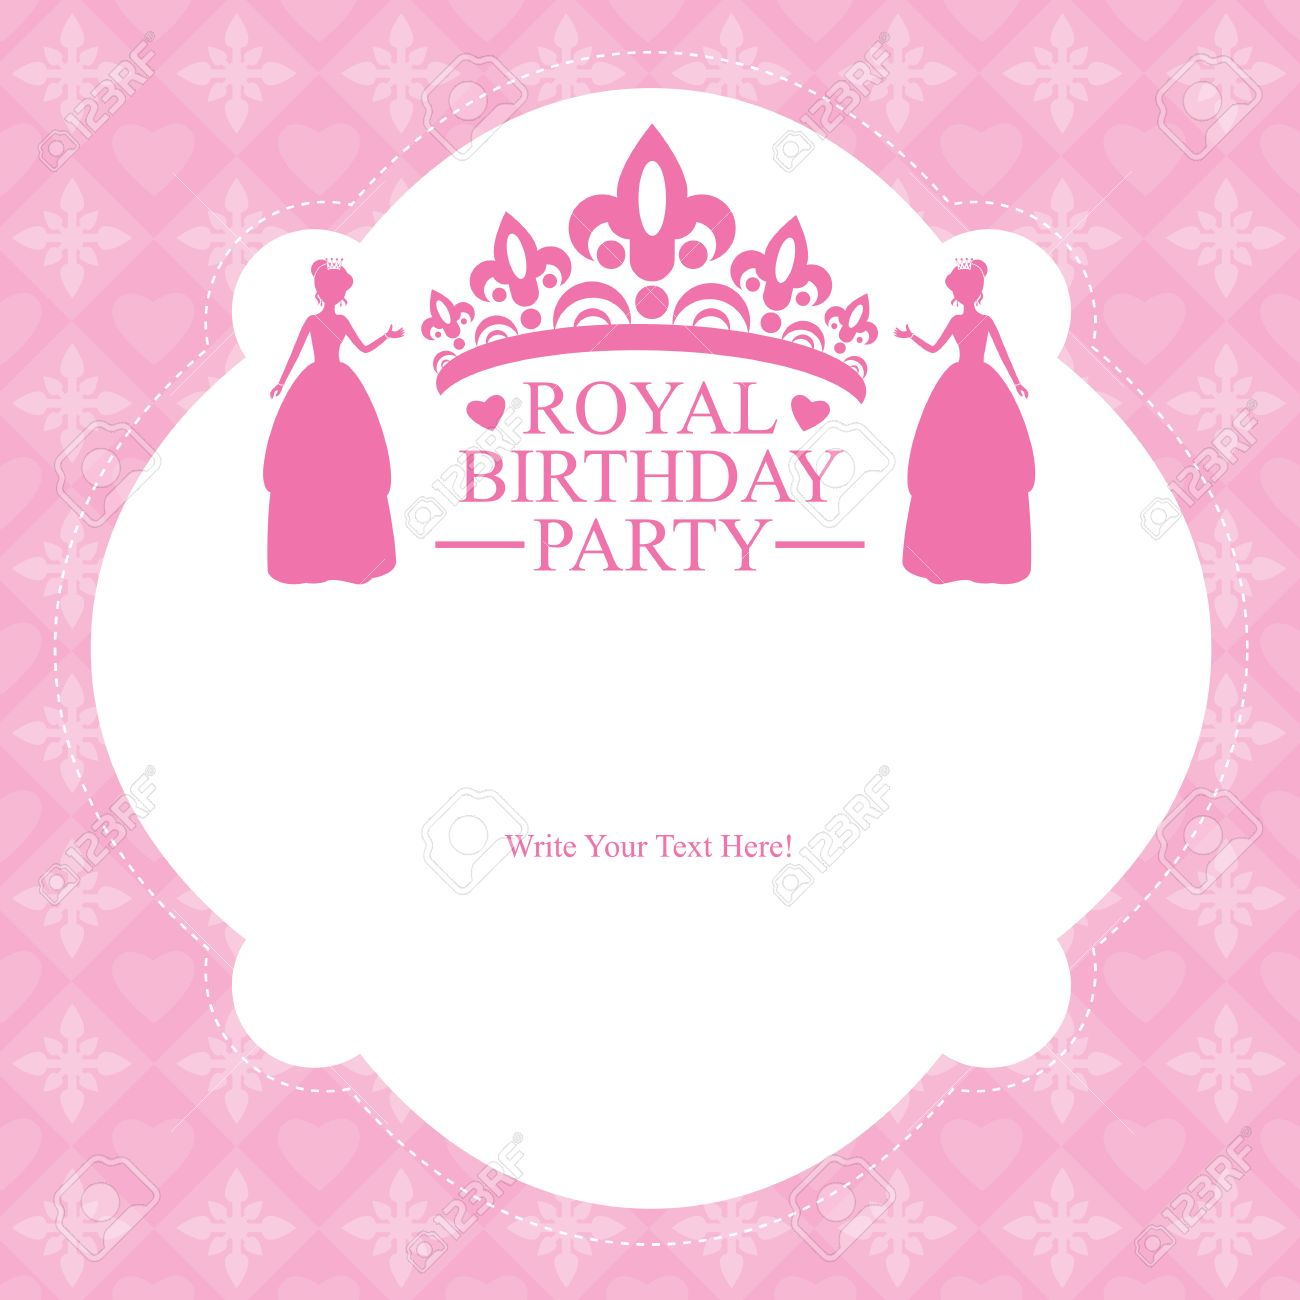 Birthday princess card invitation royalty free cliparts vectors birthday princess card invitation stock vector 29637861 stopboris Choice Image